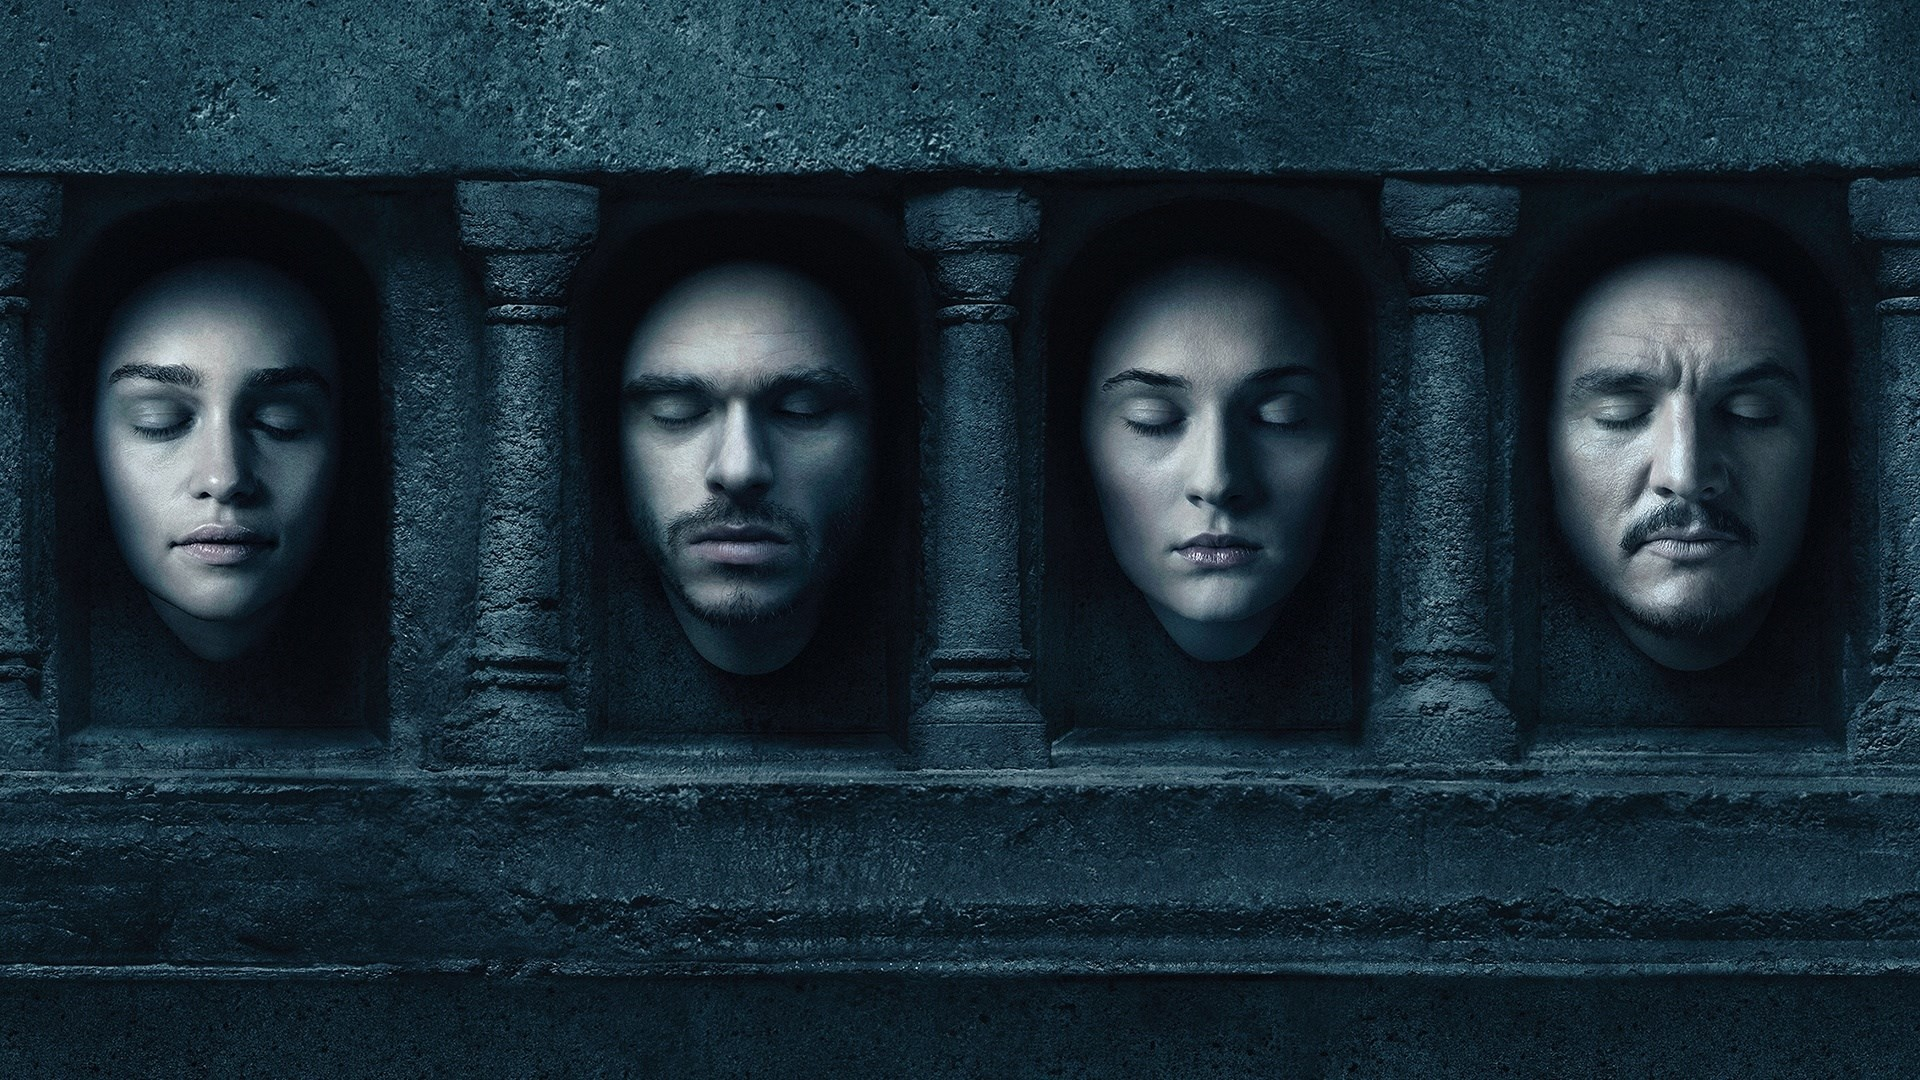 game of thrones wallpaper 1080p (72+ images)